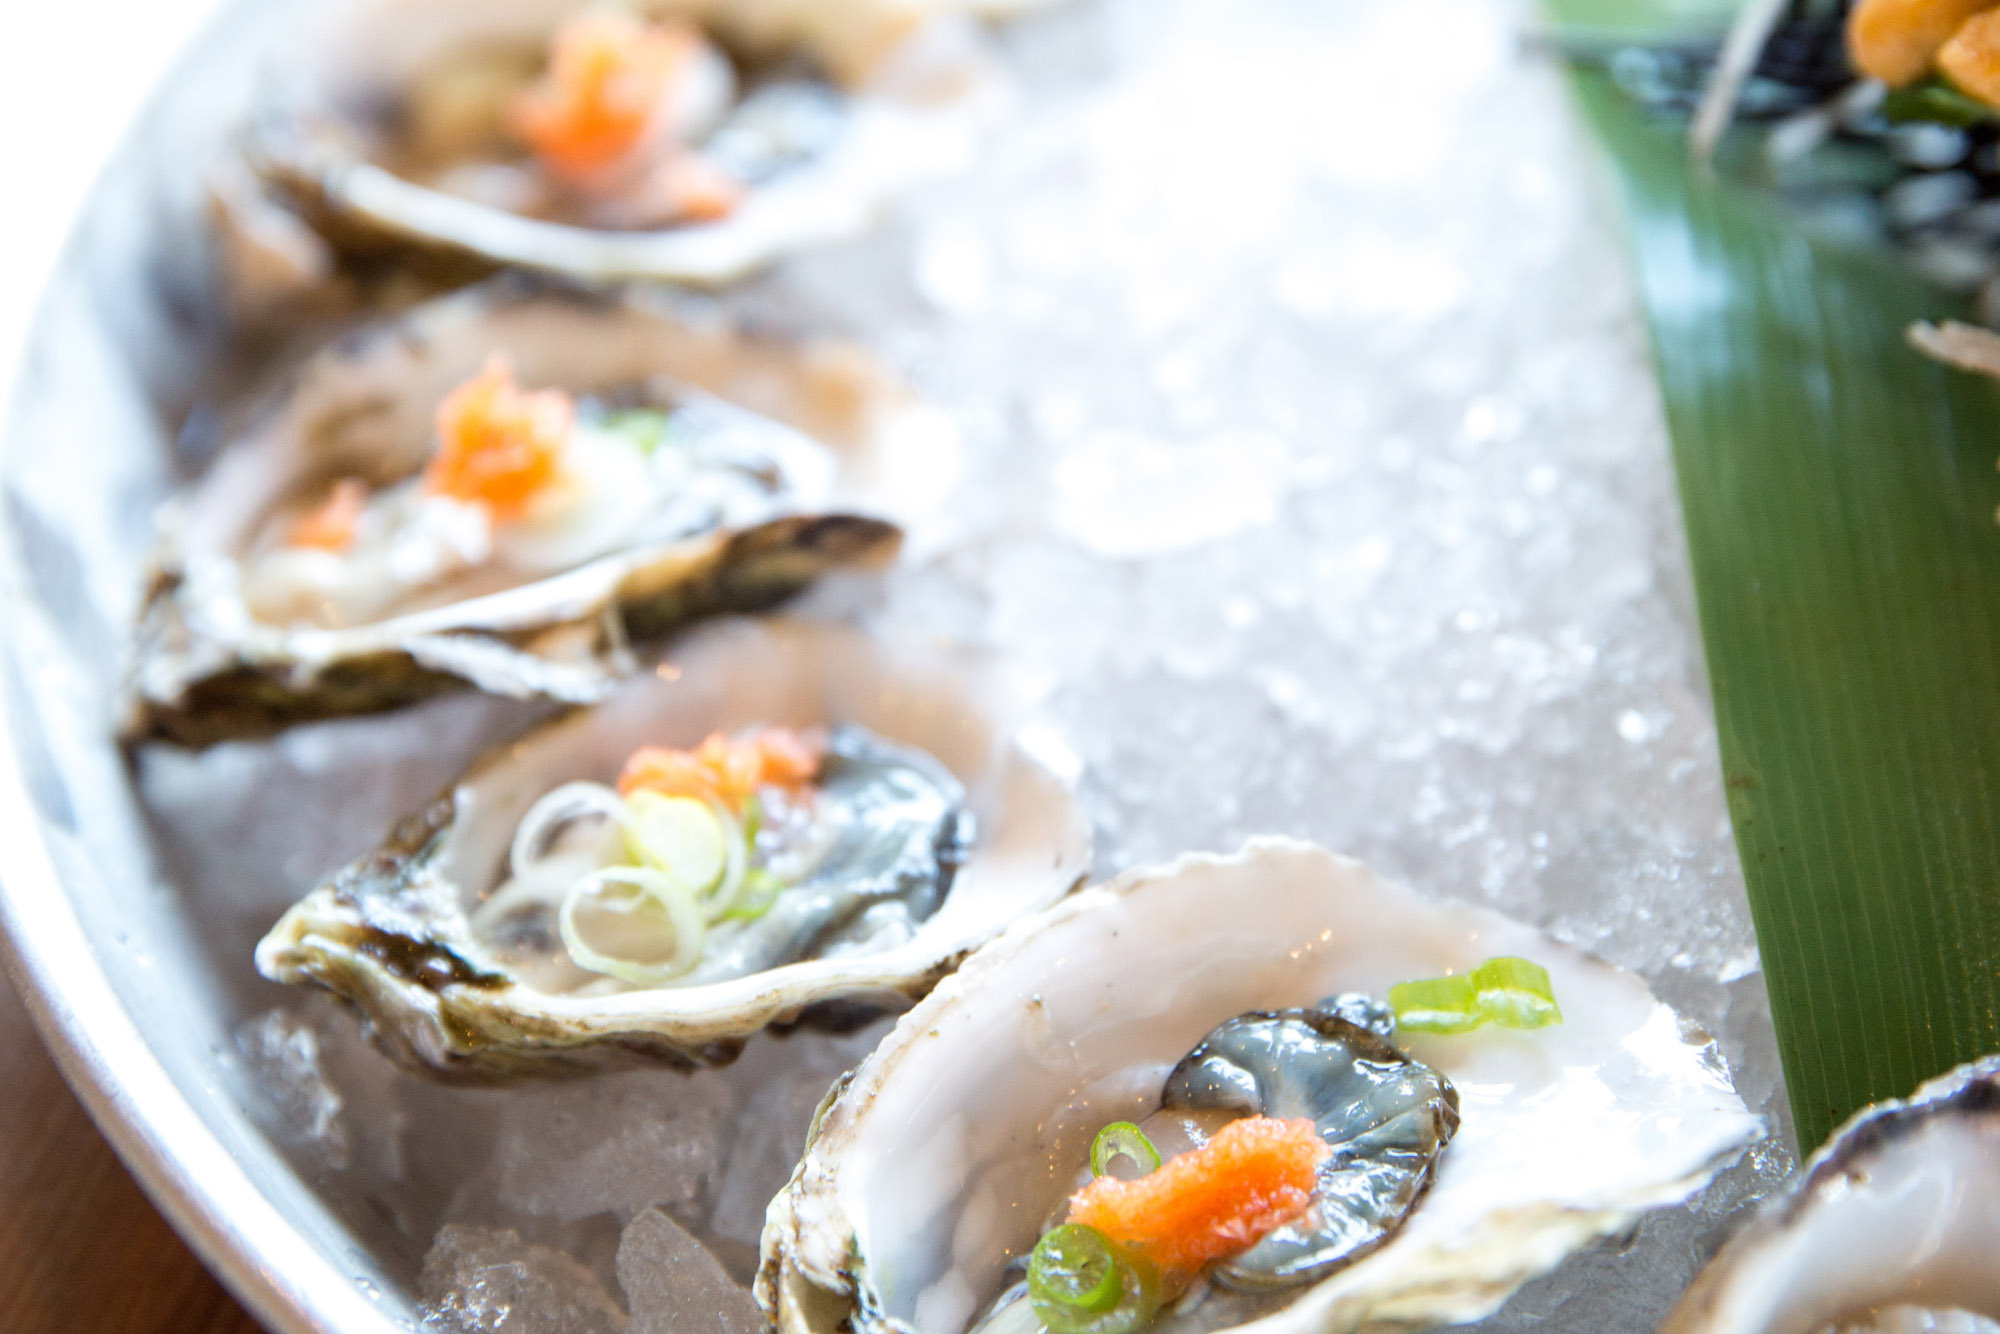 Delicious oysters at The Dornie | Seafood Restaurant near Skye